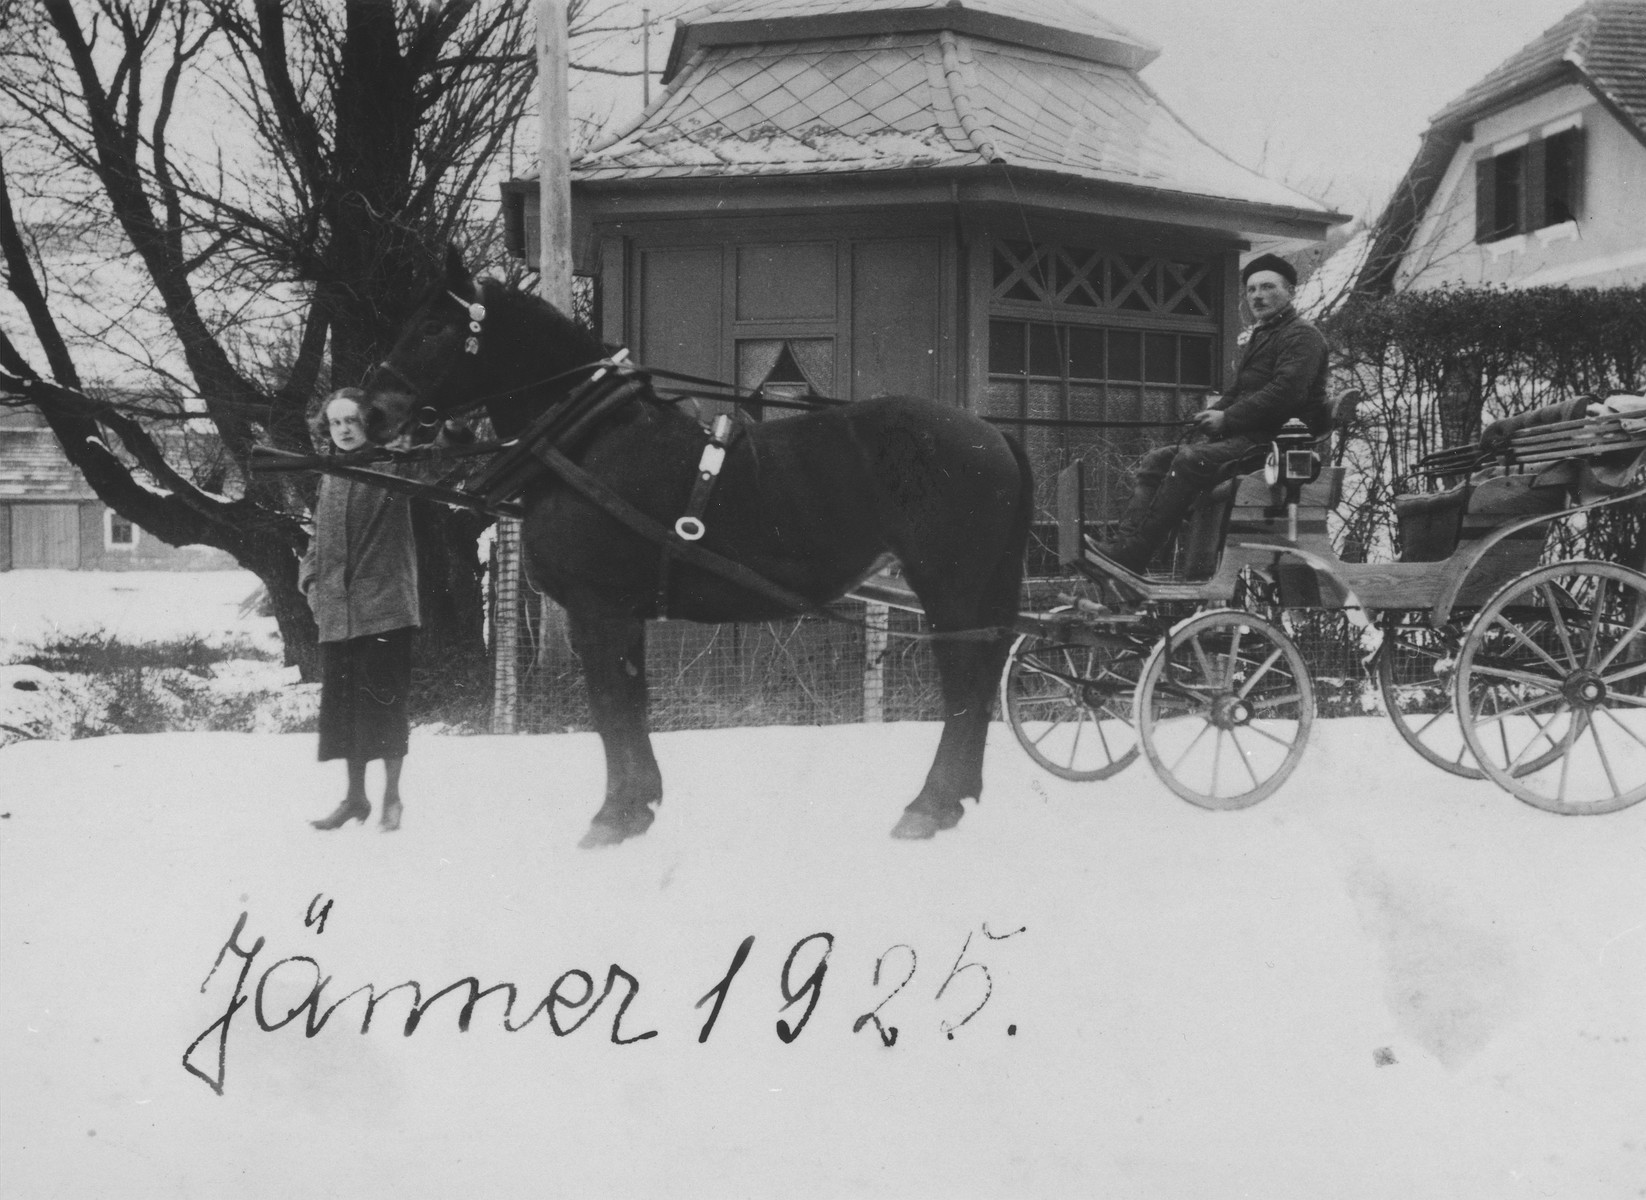 Dr. Adolf Huber drives the horse-drawn carriage he uses to make house calls.  His daughter Irenka stands beside the horse.  Irenka survived WWII in hiding in Hungary.